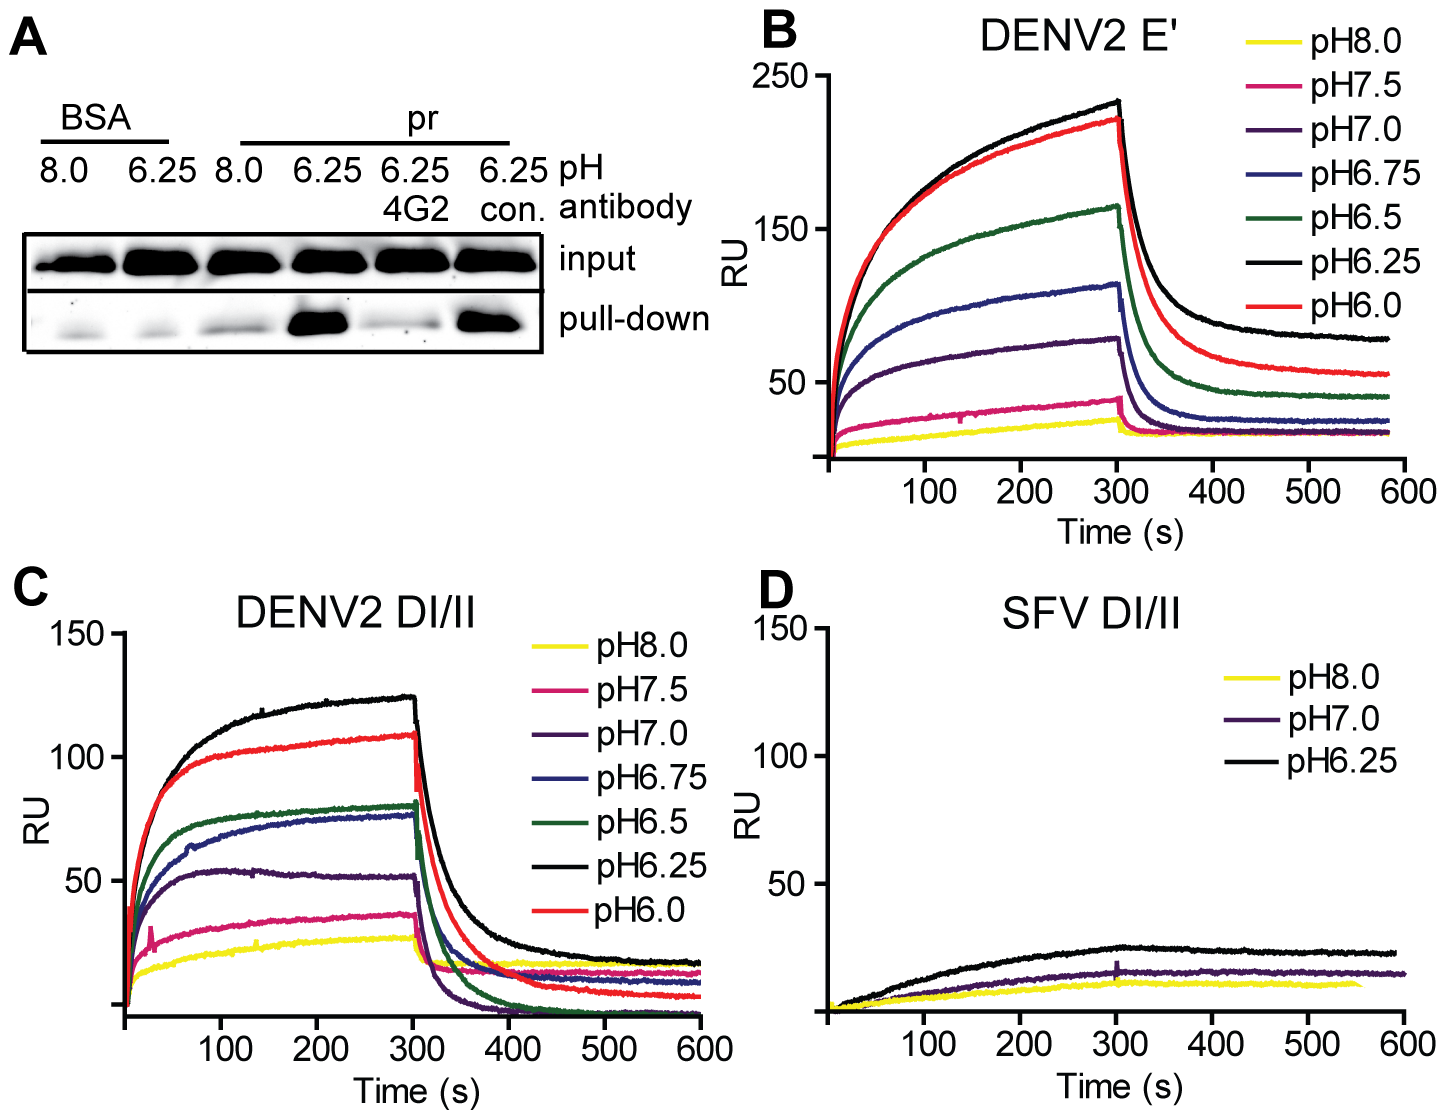 Pr peptide binds DENV E proteins in a pH-dependent manner.